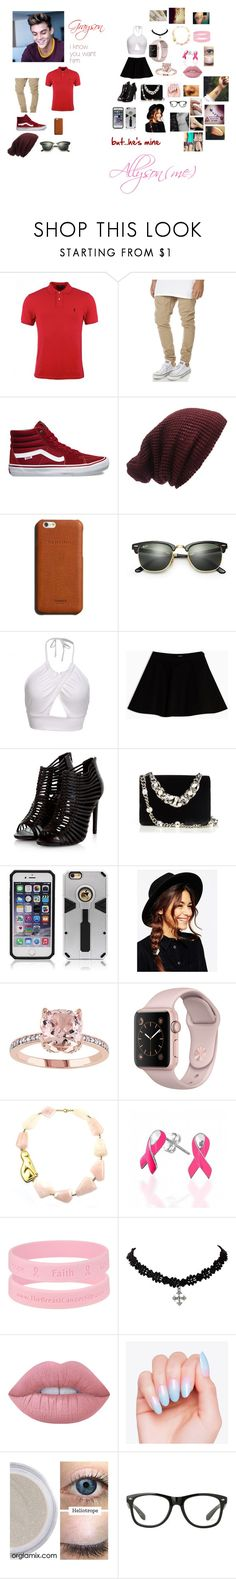 """""""me hanging out with my boyfriend Grayson Dolan"""" by ravenclaw-13 on Polyvore featuring Dolan, Polo Ralph Lauren, Rusty, Vans, Forever 21, Shinola, Ray-Ban, Max&Co., Miu Miu and ASOS"""